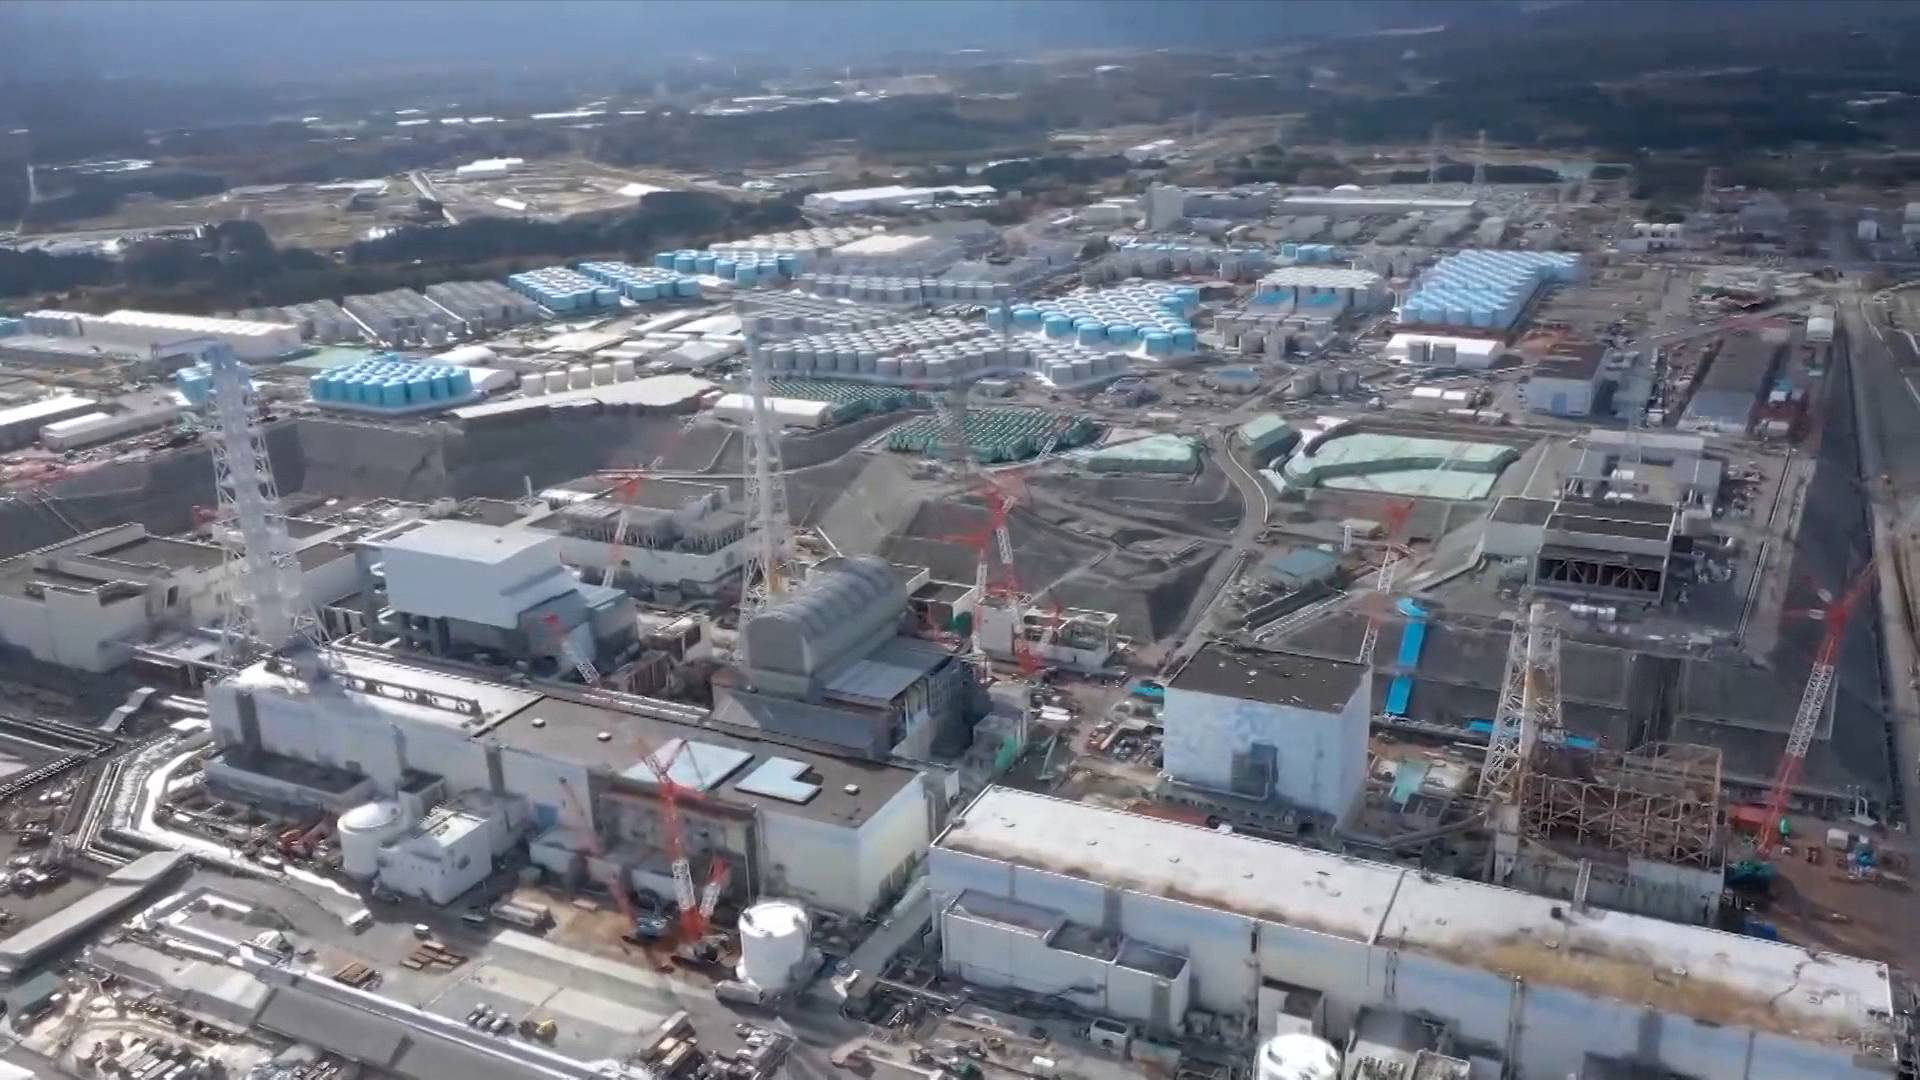 GLOBALink | More scientific research needed for dumping nuclear wastewater: ecologist